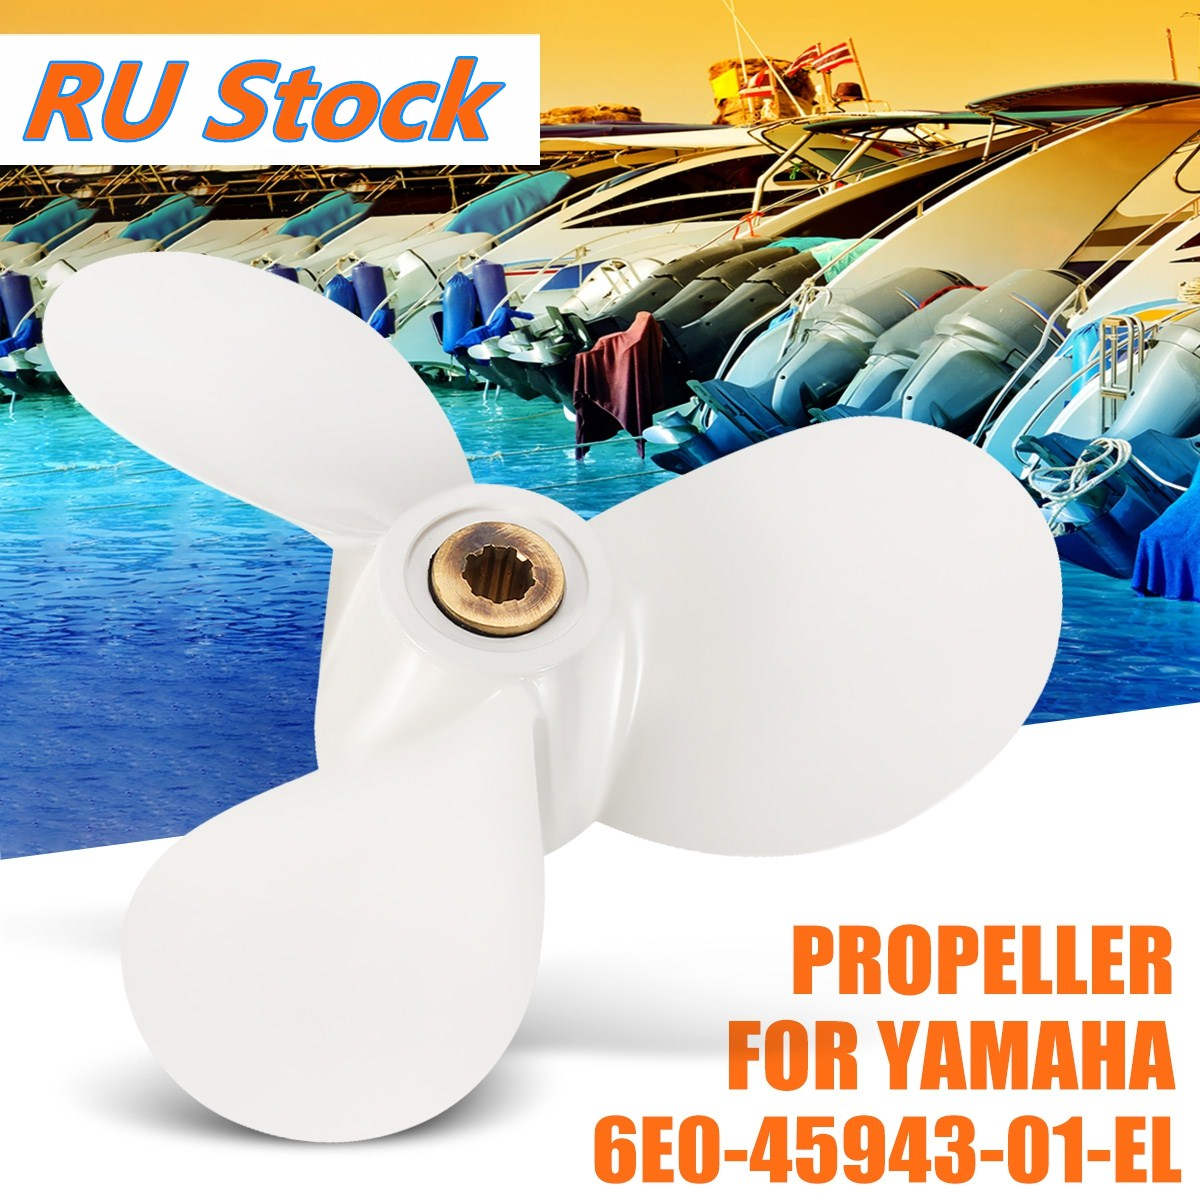 1pcs Boat Motors Marine Propellers For Yamaha Outboard 4hp 5hp 6hp Engine 71/2x 7-ba #6e0-45943-01-el Radius 9.5 Cm White Colour Atv,rv,boat & Other Vehicle